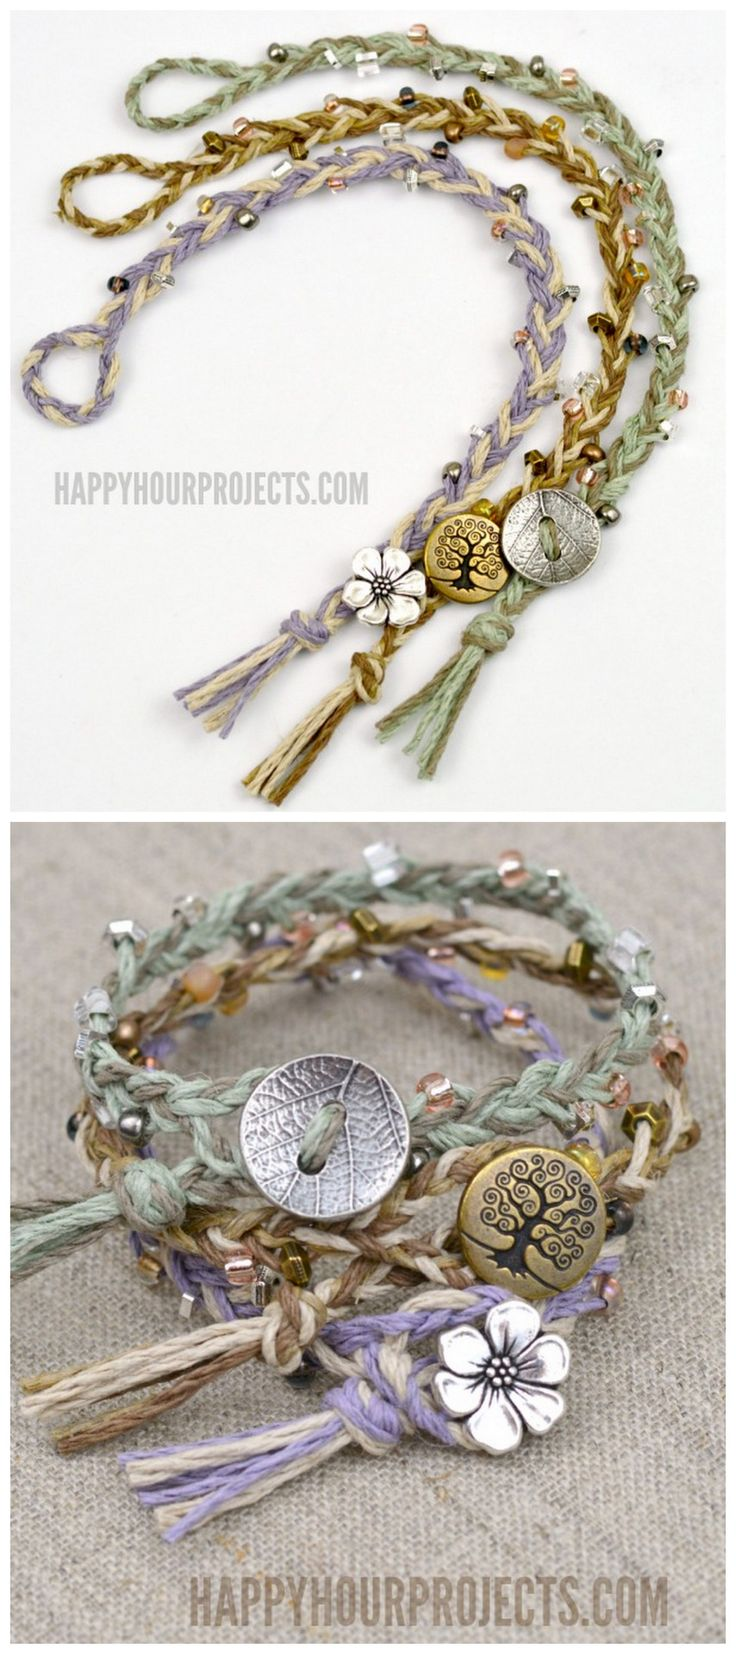 best fun generally crafts u things to make images on pinterest